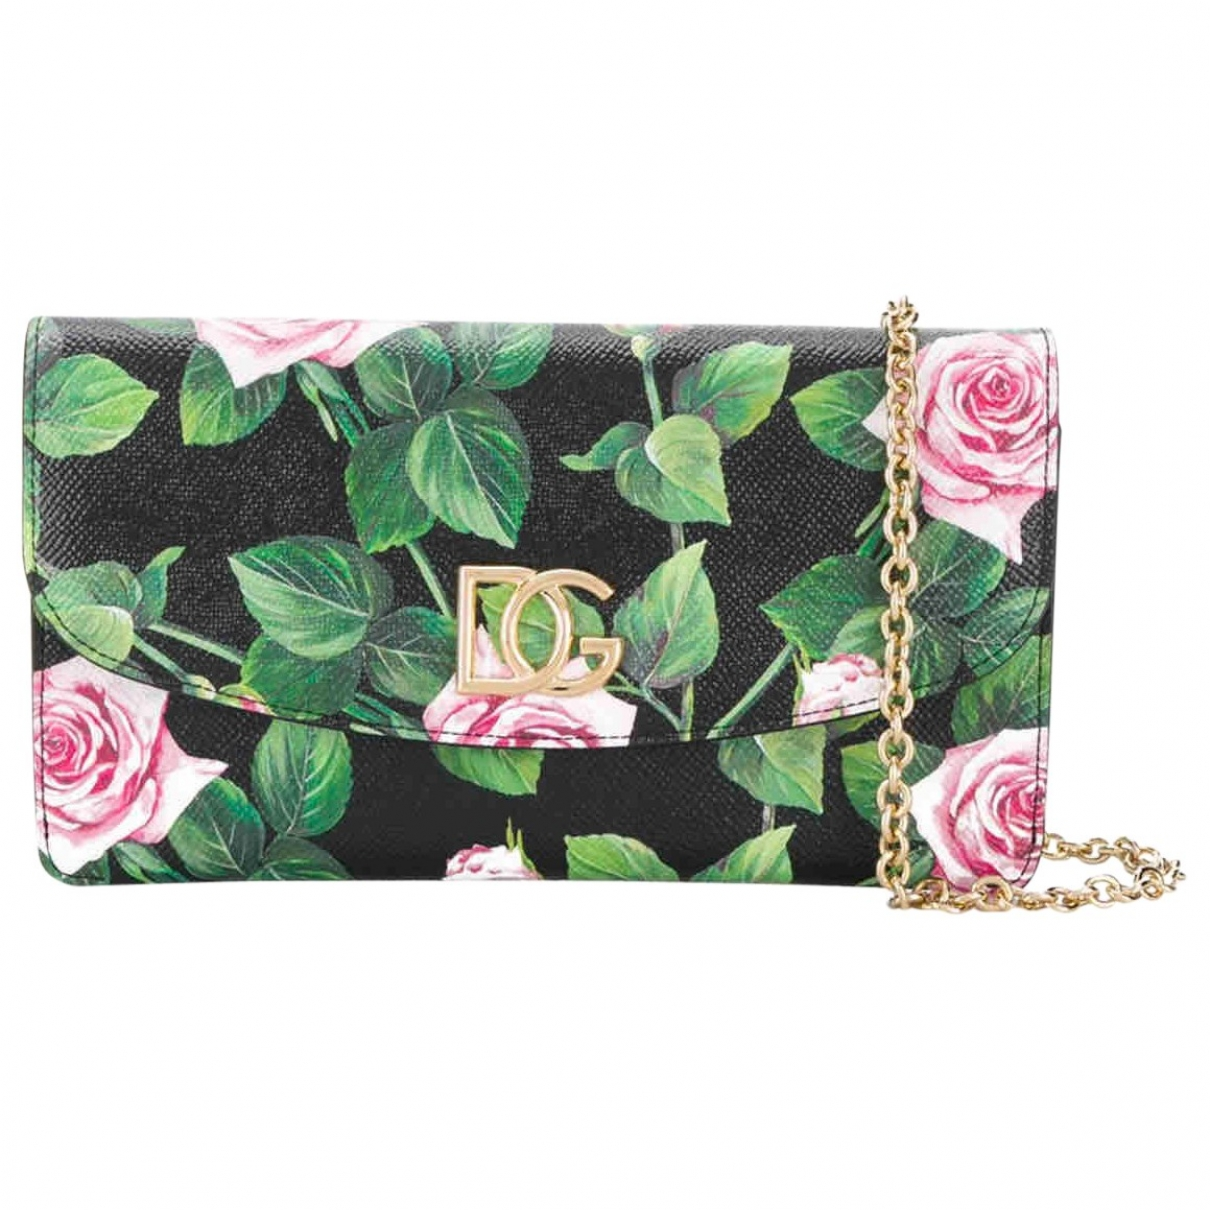 Dolce & Gabbana \N Multicolour Leather Clutch bag for Women \N